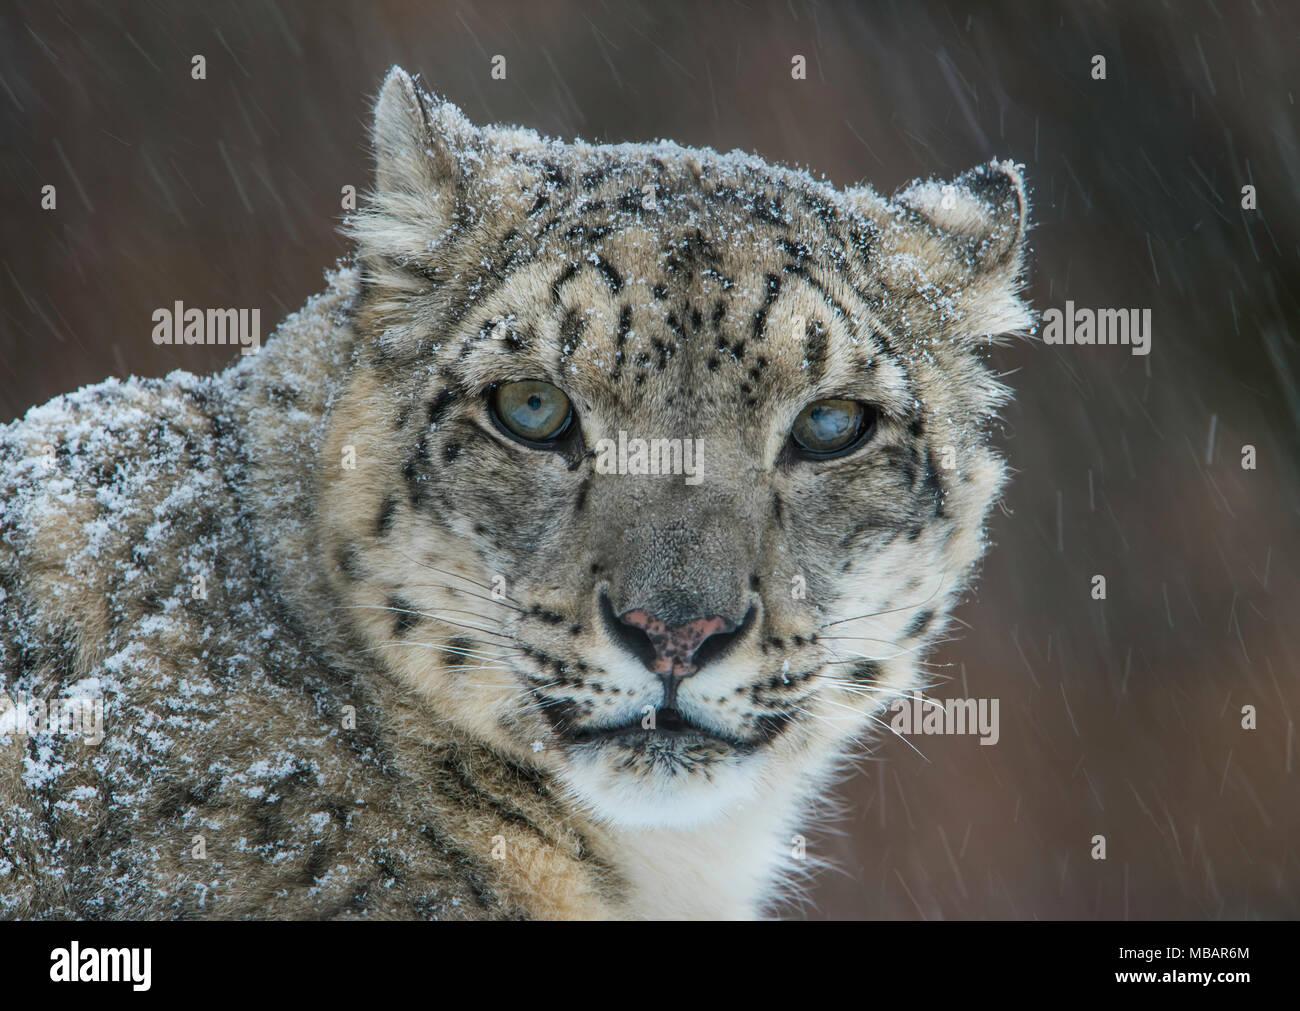 Snow Leopard (Panthera uncia), winter, Central & South Asia, filmed under controlled conditions, by Bruce Montagne/Dembinsky Photo Assoc Stock Photo